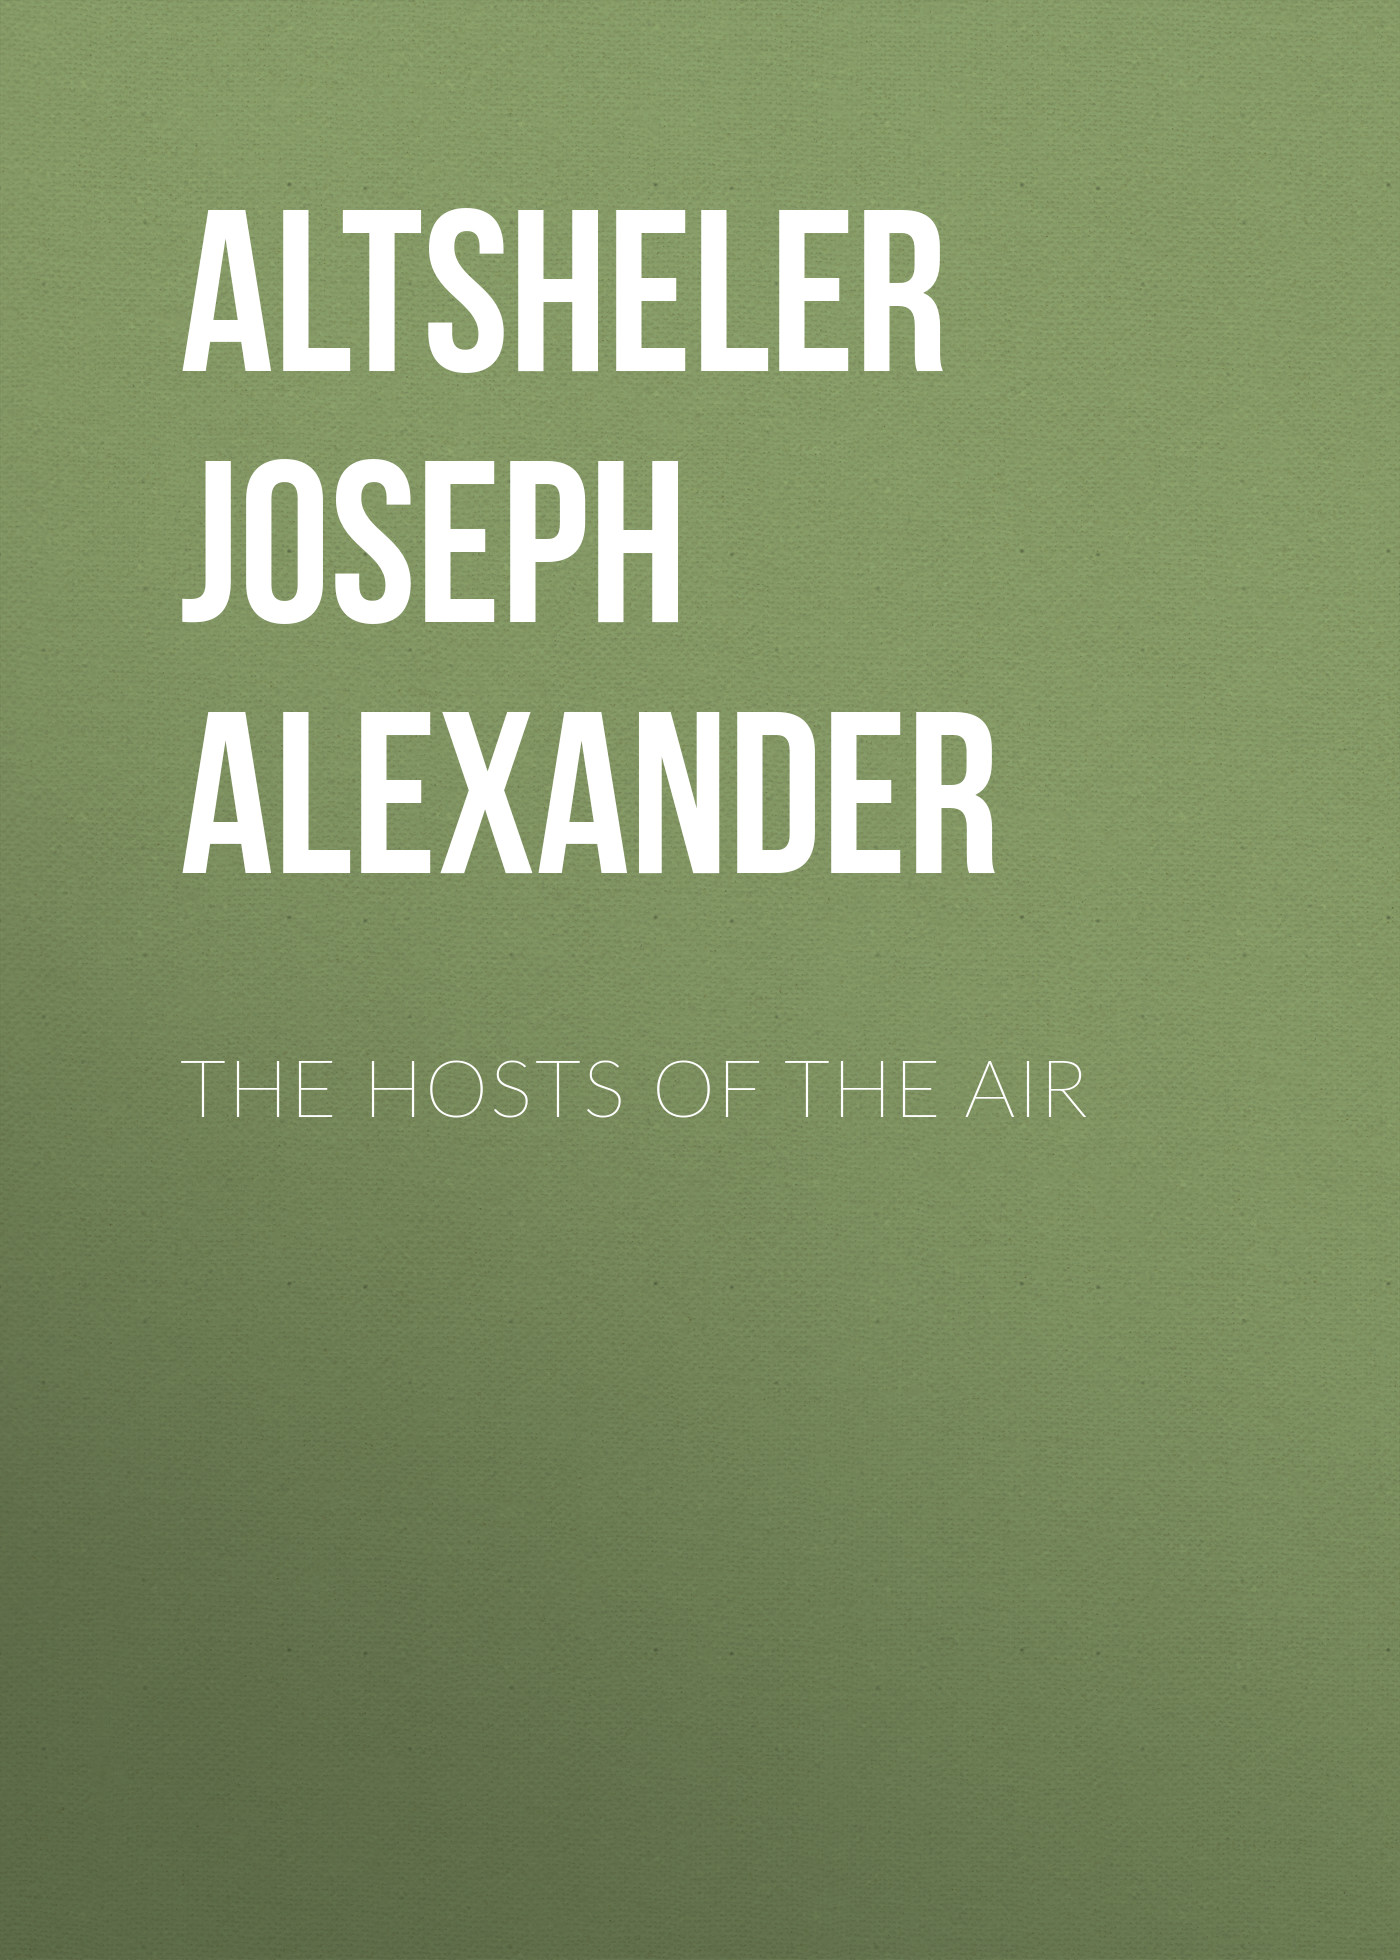 Altsheler Joseph Alexander The Hosts of the Air skirt joseph alexander page 2